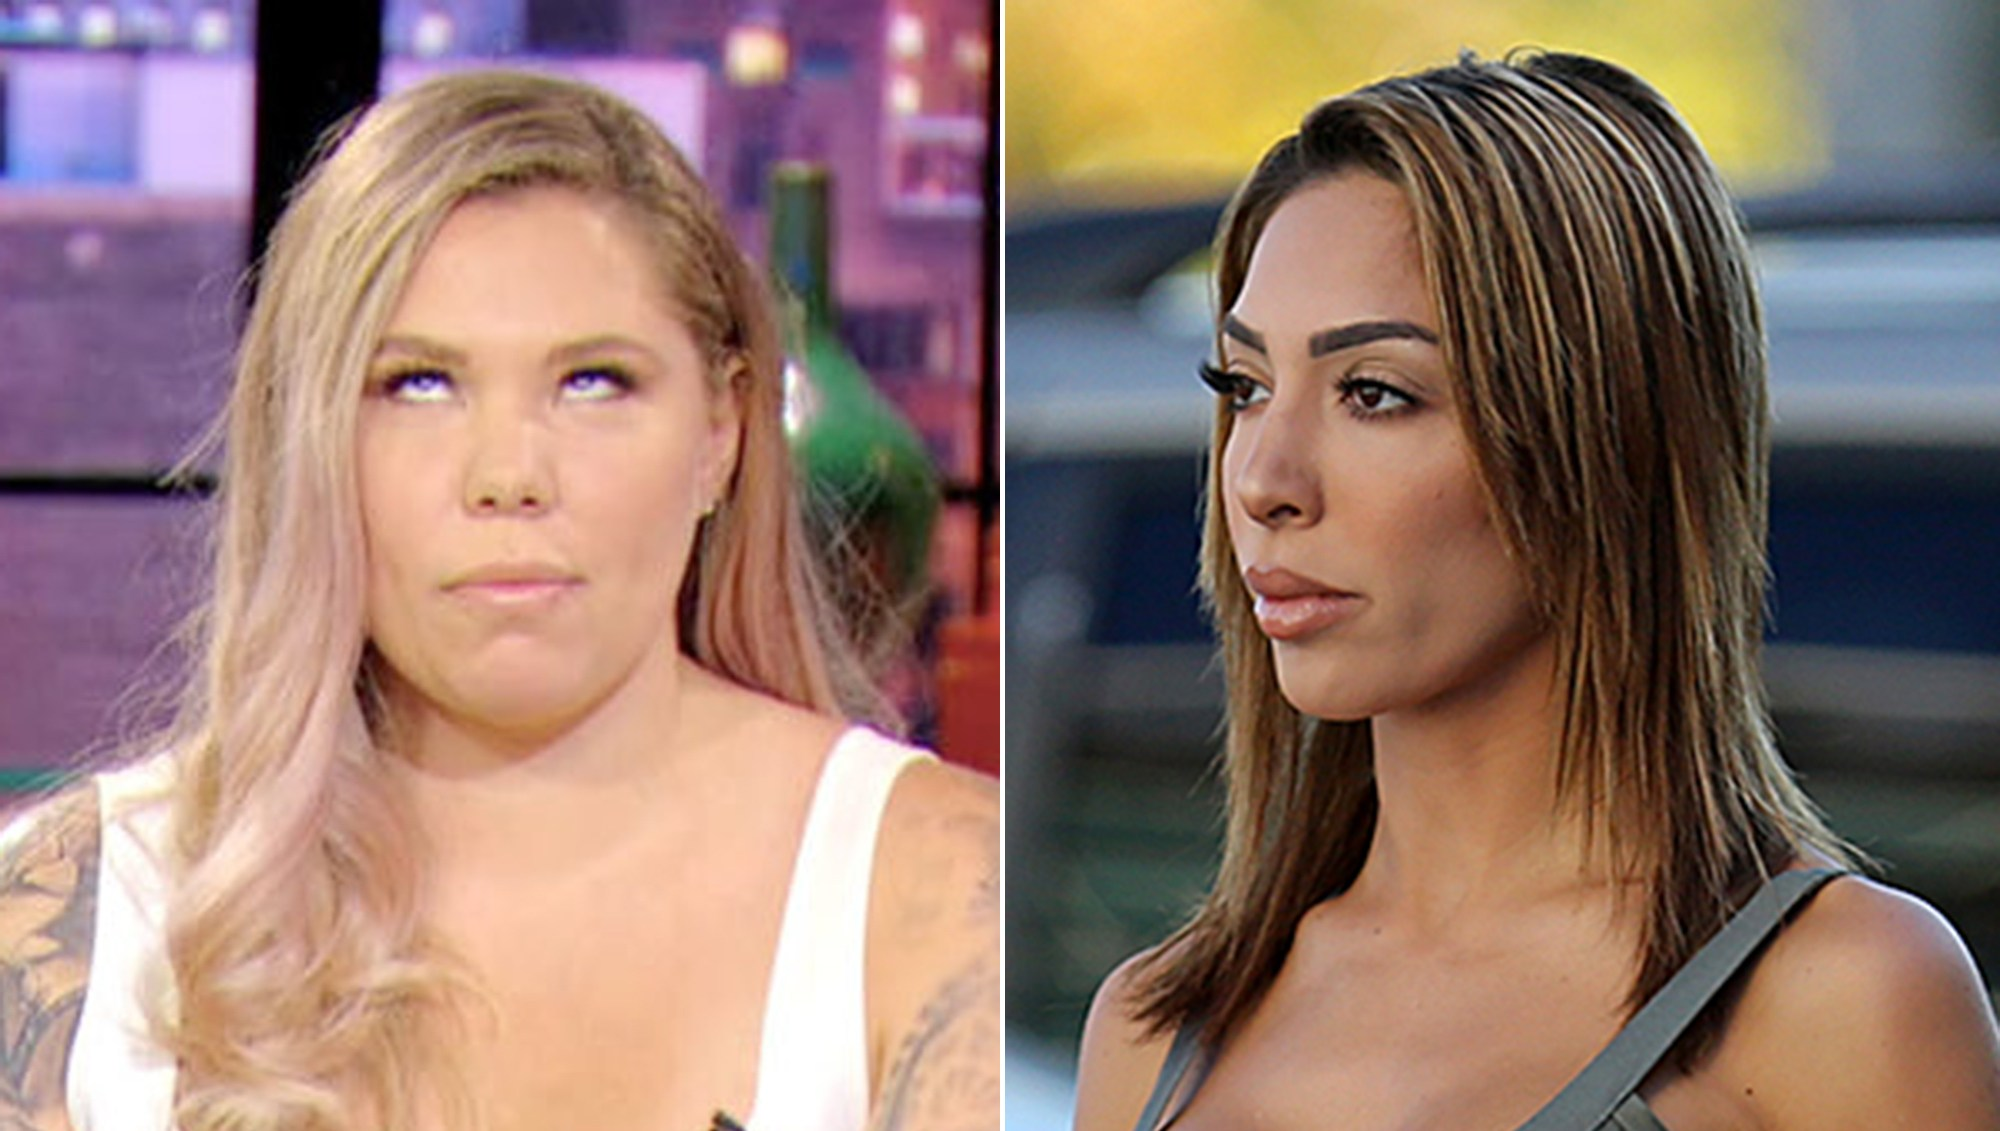 Kailyn Lowry Wants to Fight Farrah